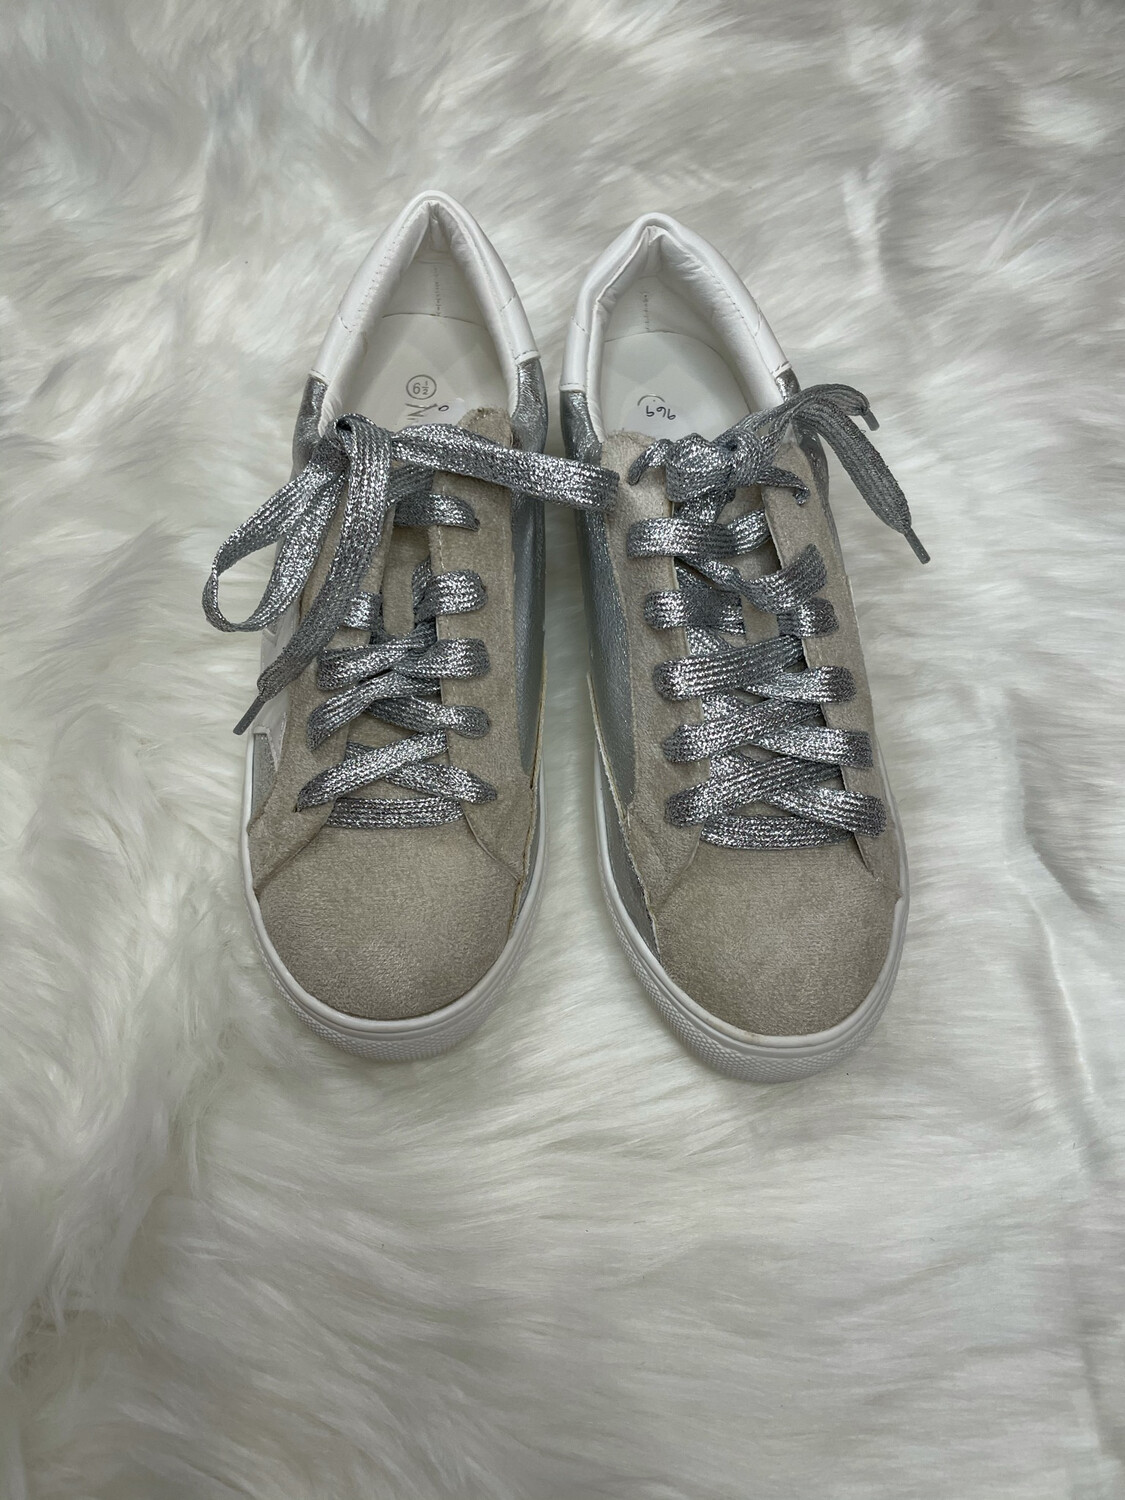 Nature Breeze White & Silver Star Sneakers - Size 6.5